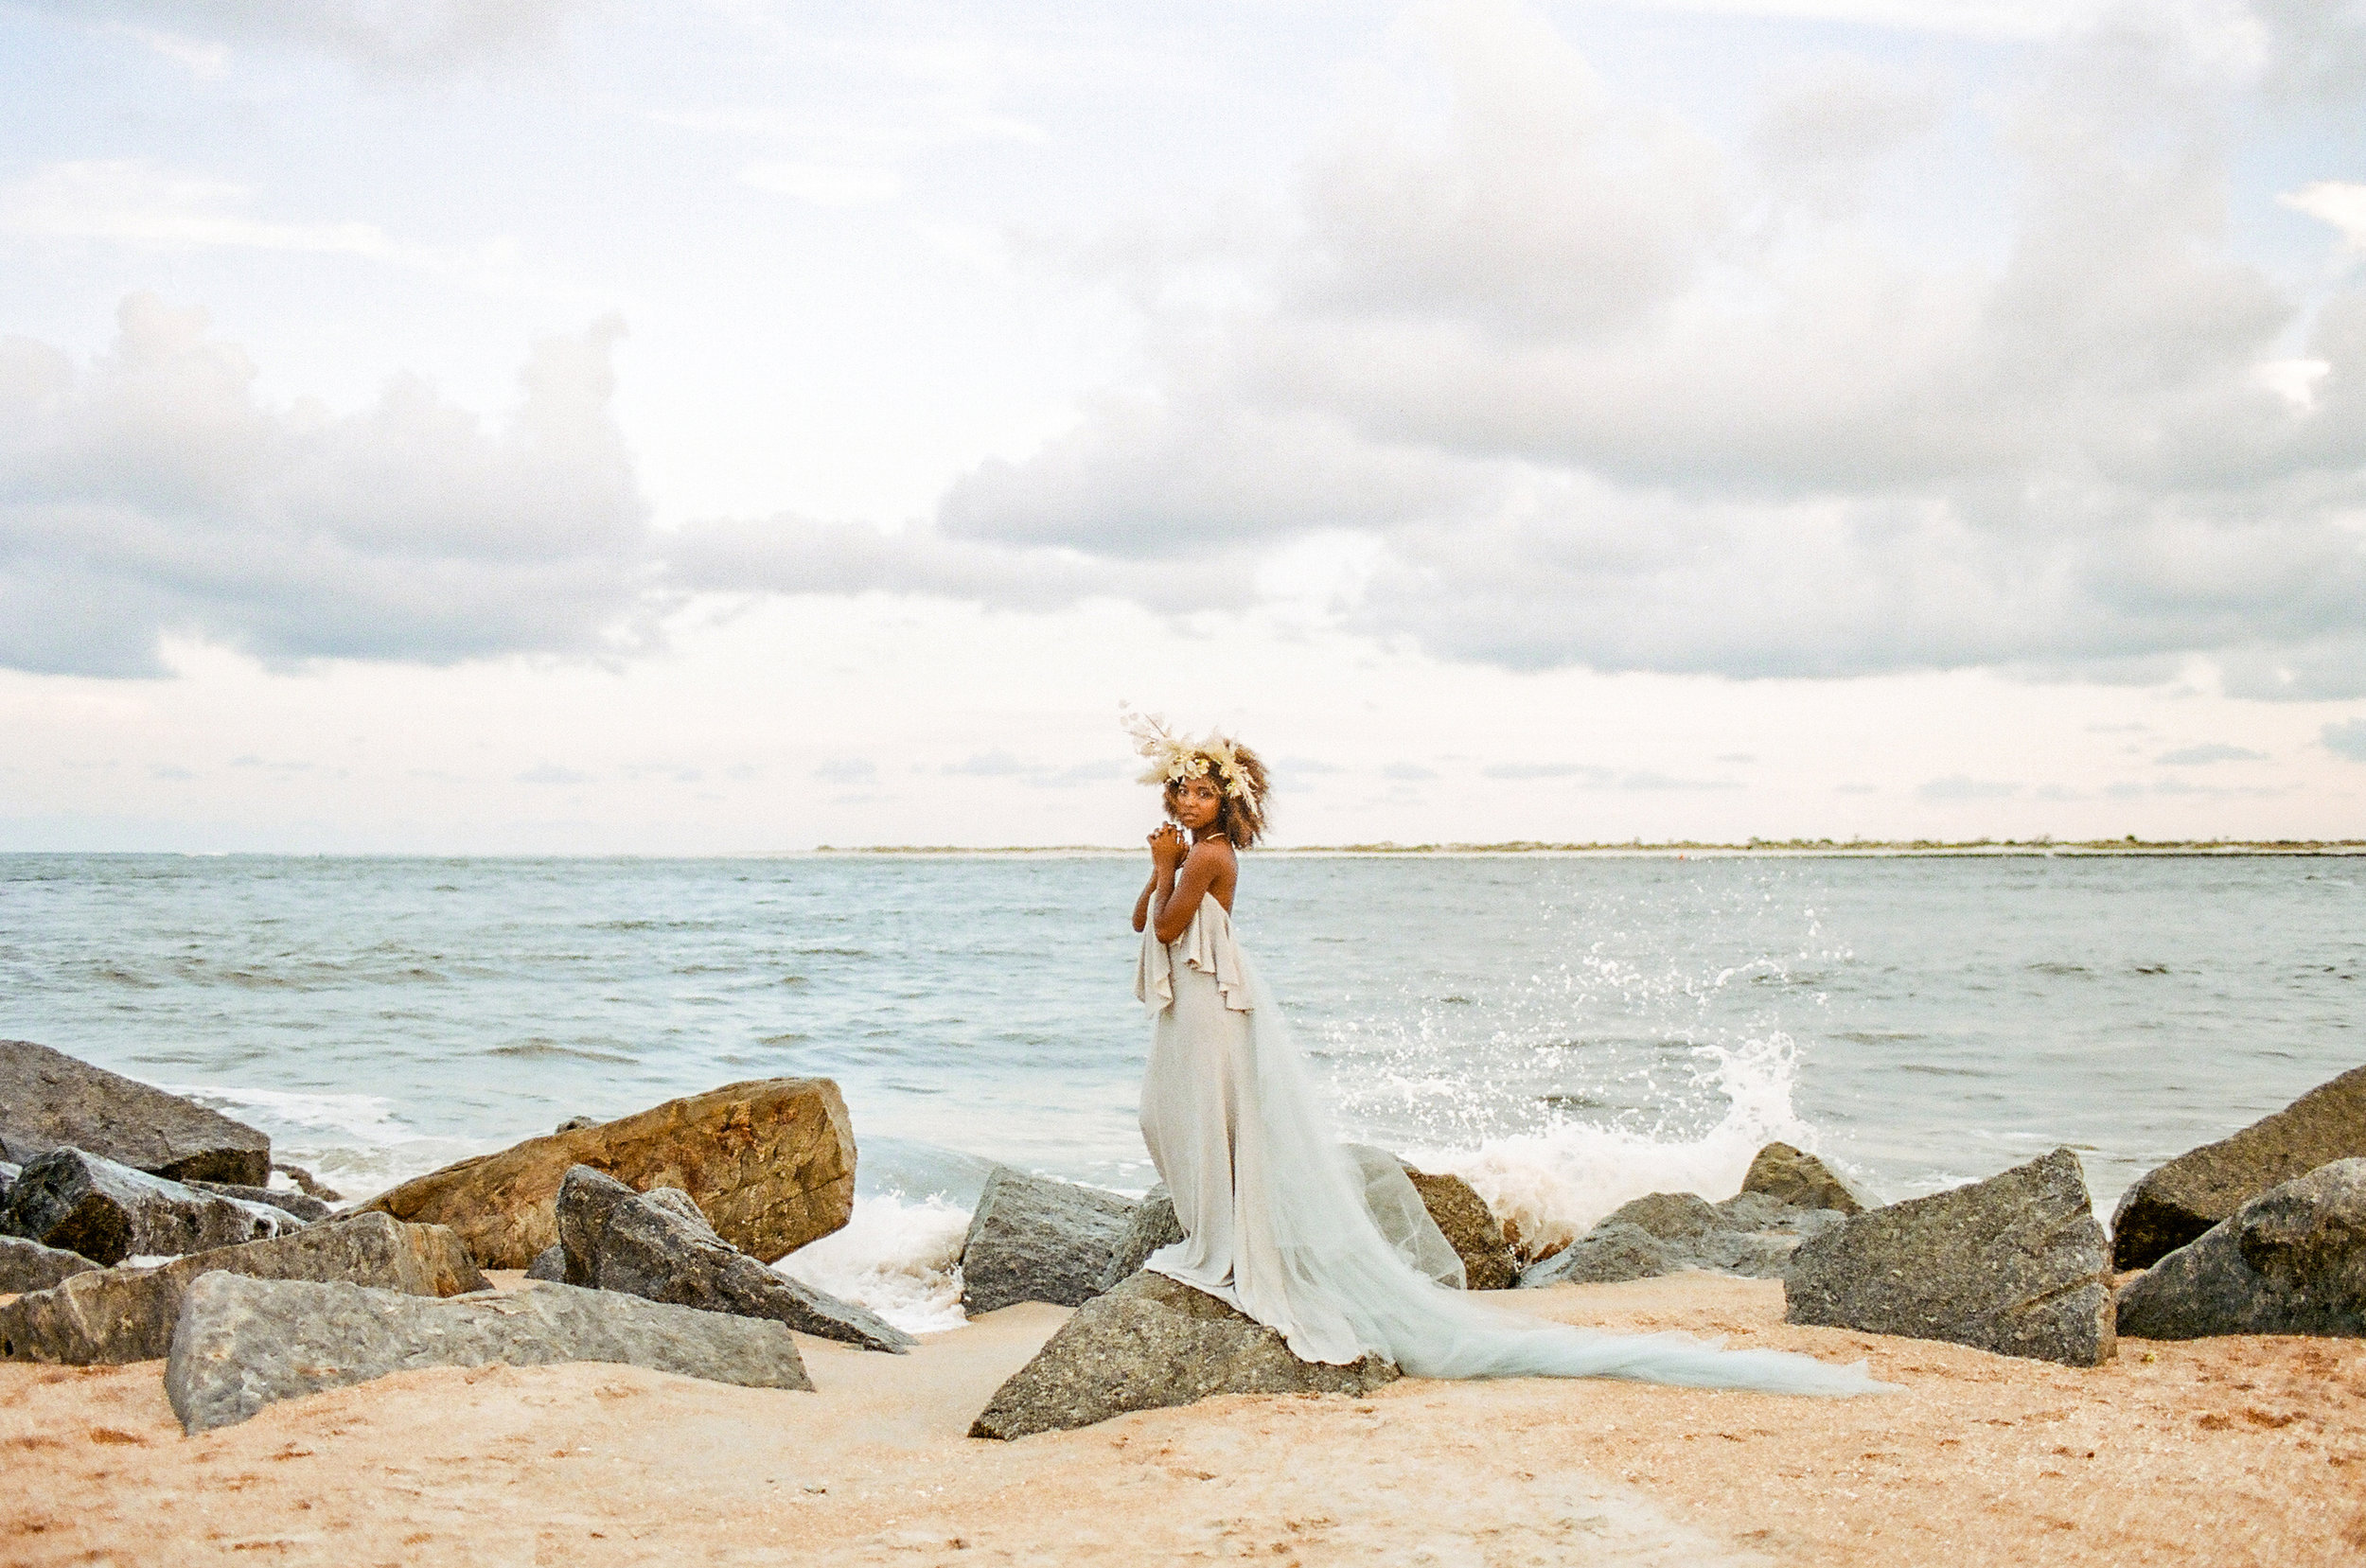 Blue wedding gown beach wedding nonconventional bride018.jpg